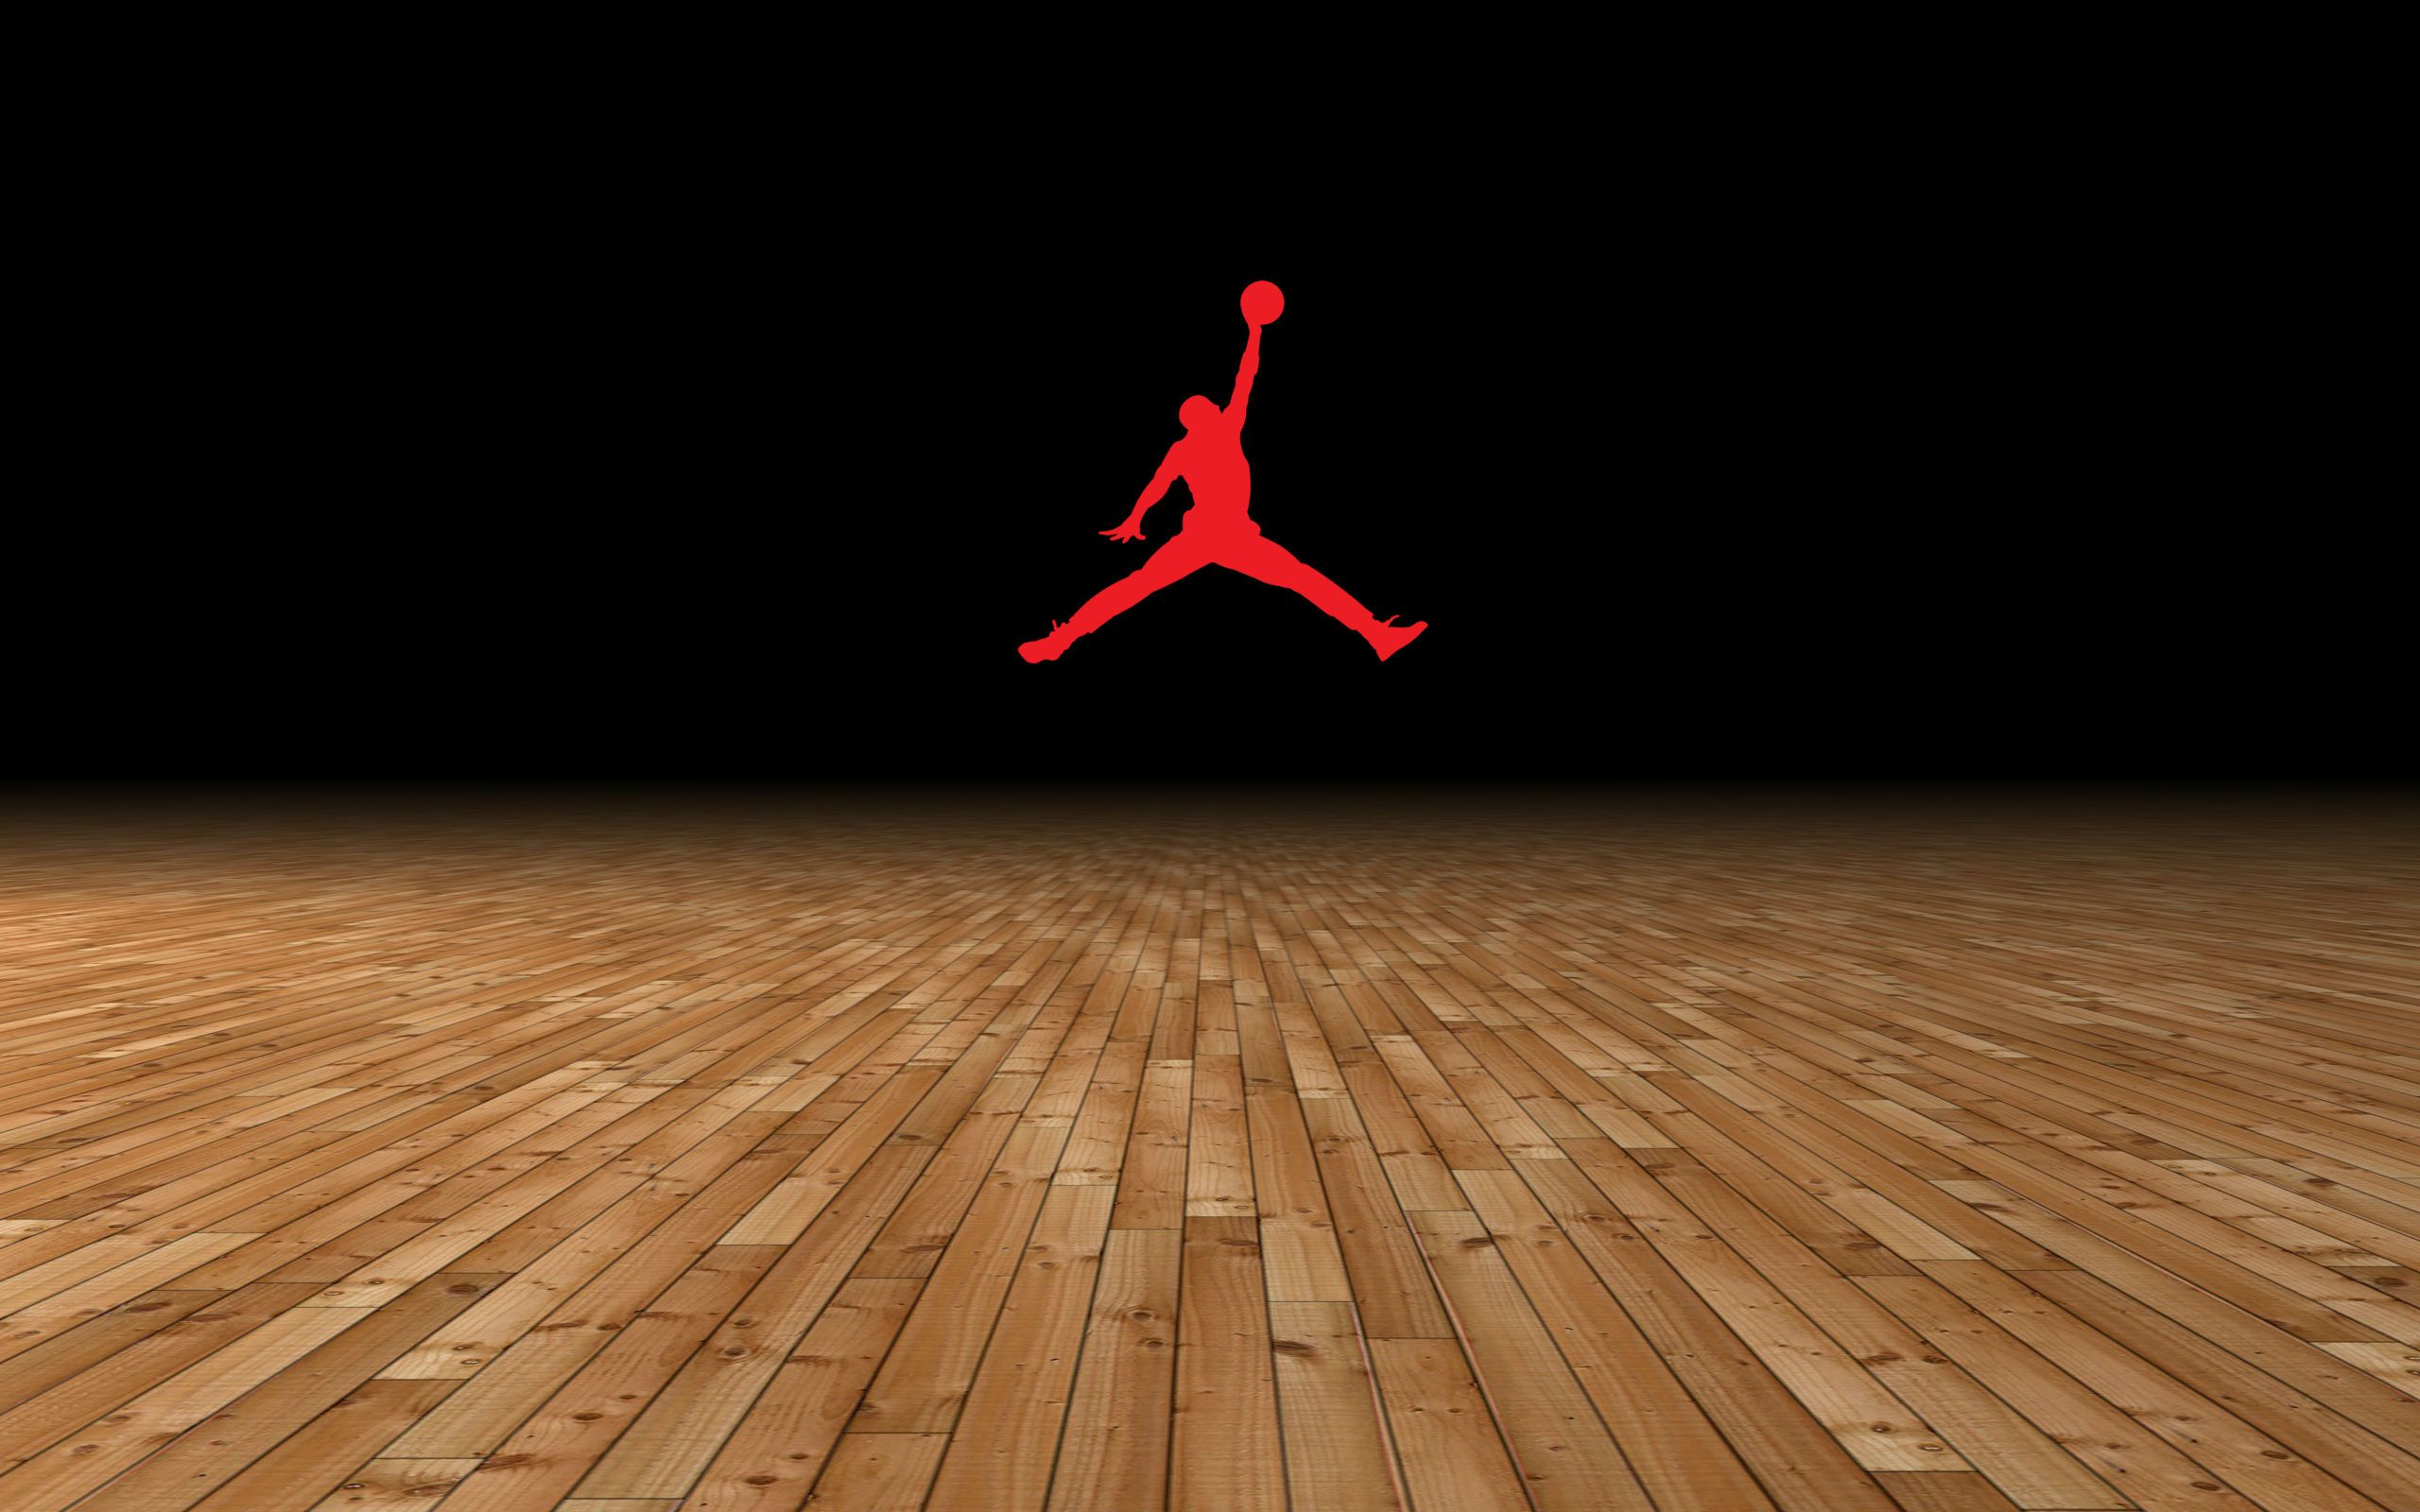 2560x1600 Michael Jordan HD Wallpaper | Background Image | 2560x1600 | ID ...